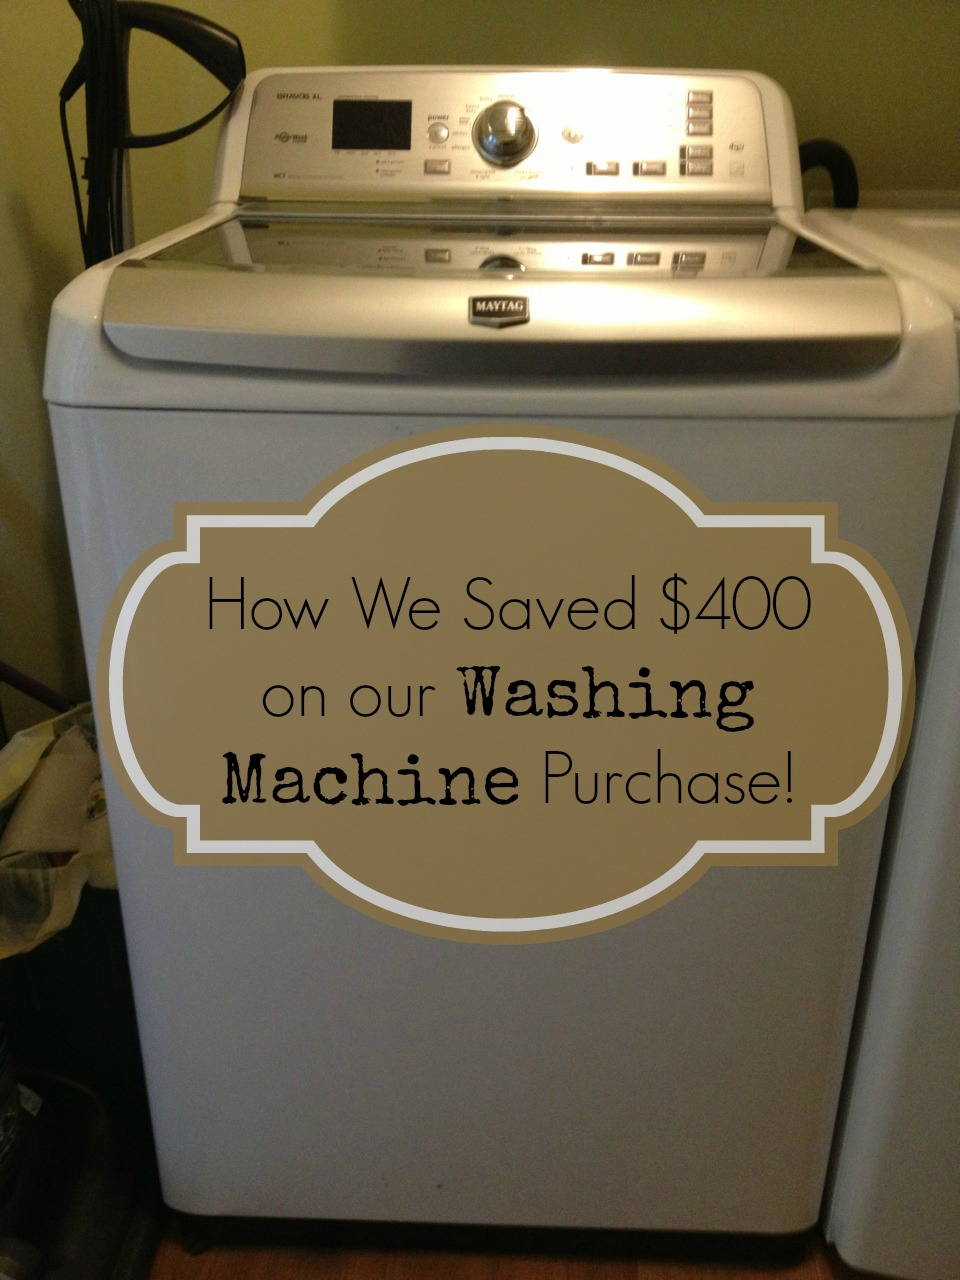 How We Saved $400 on our Washing Machine Purchase